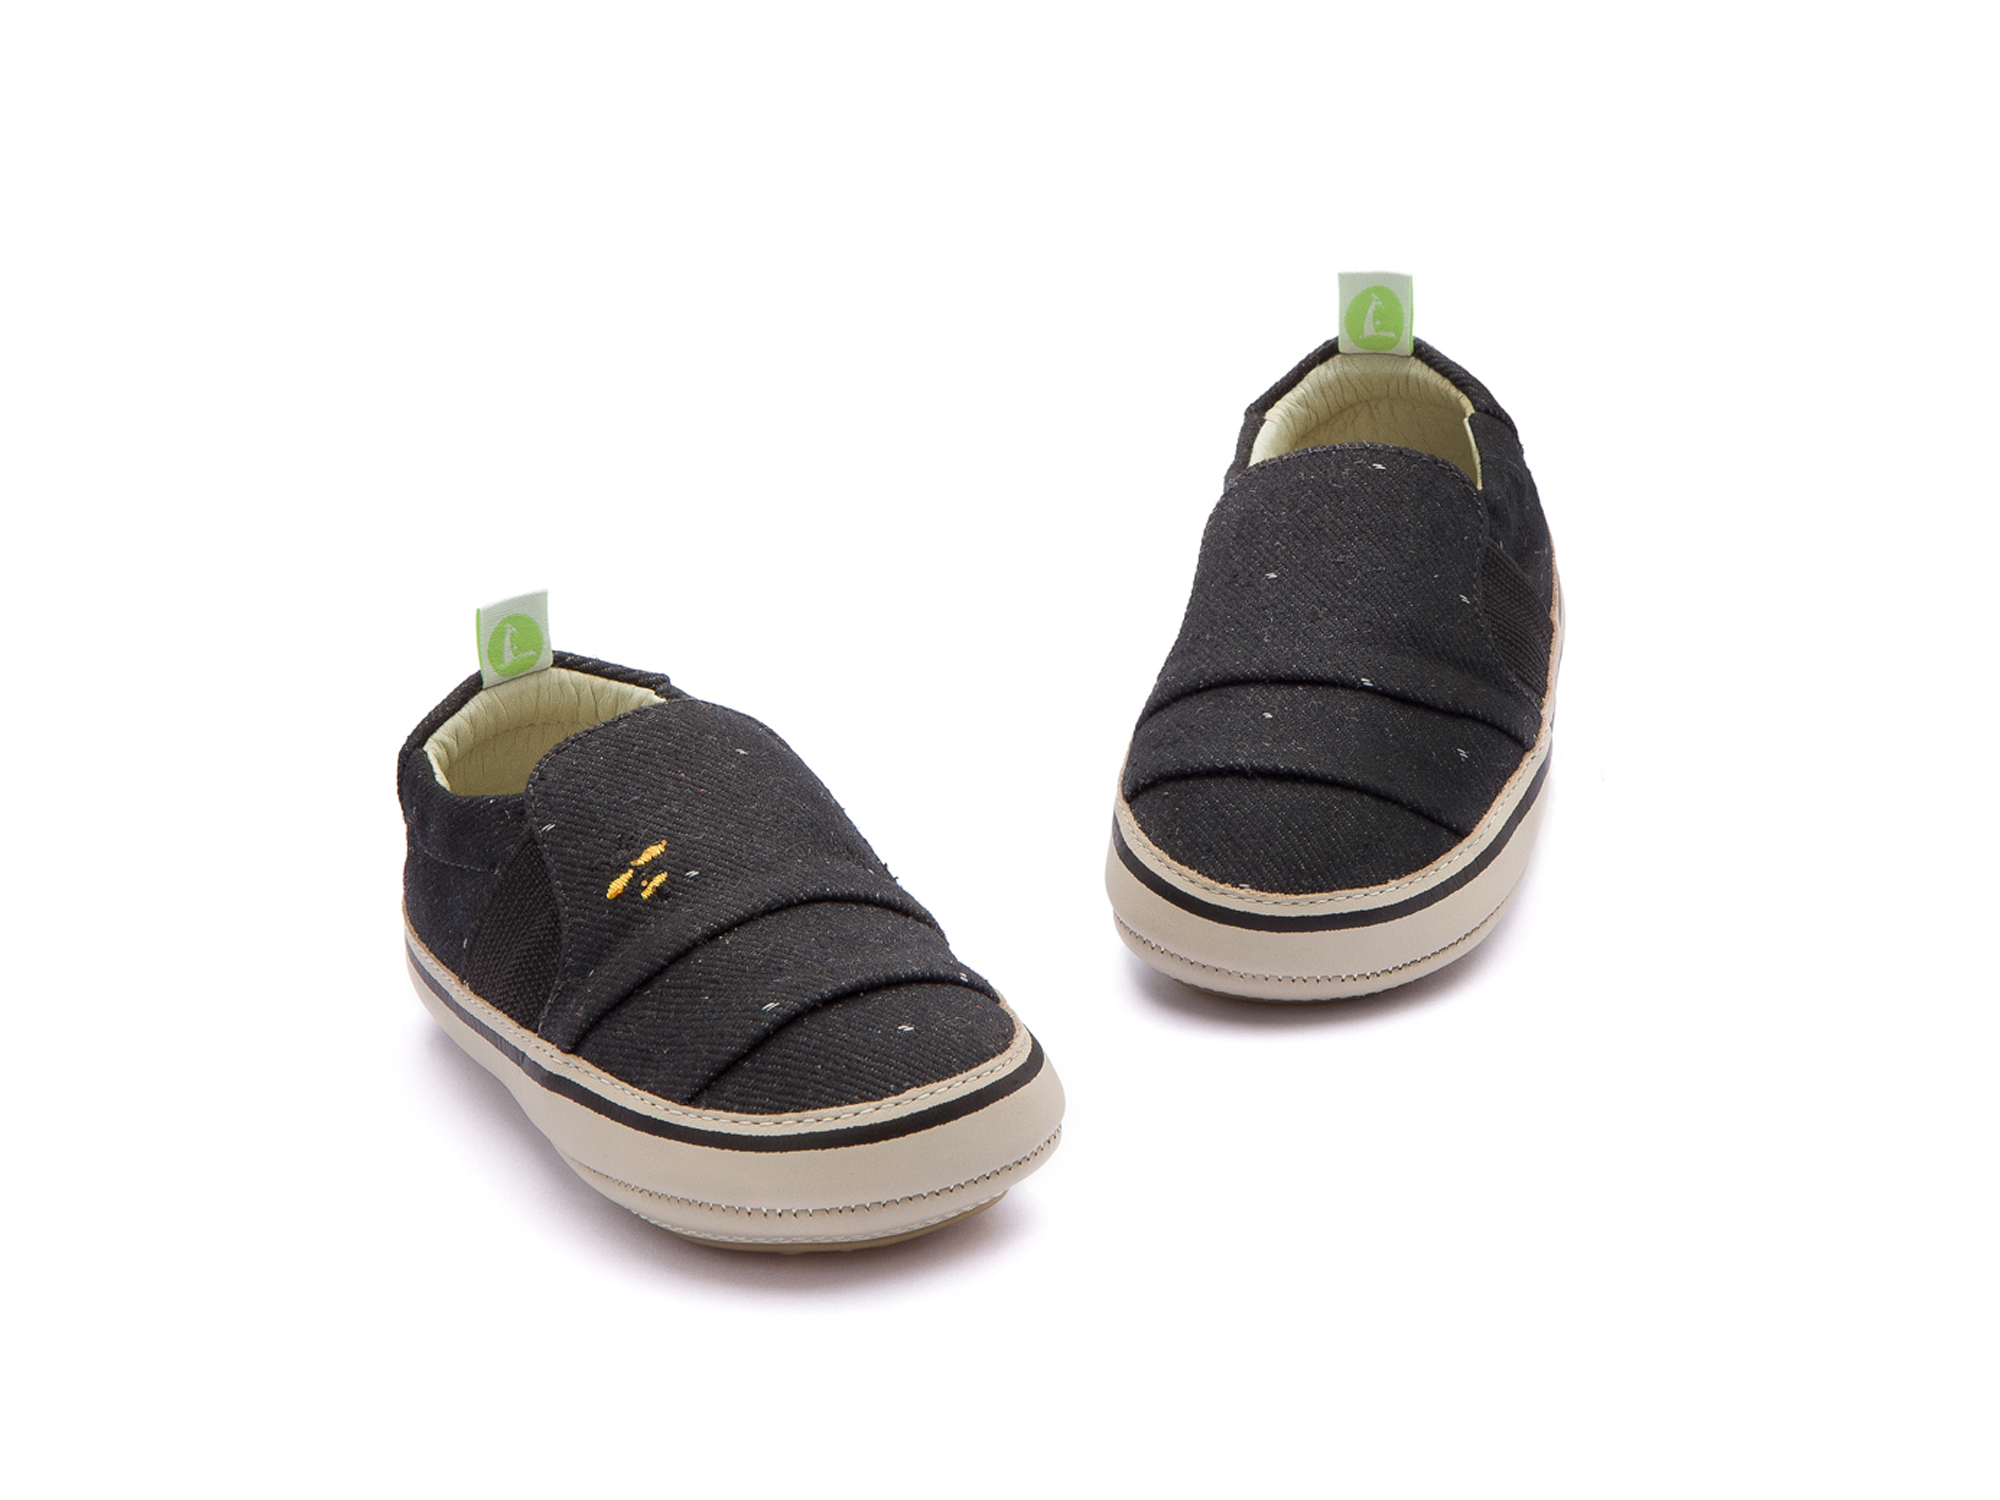 Tênis Slippy Black Space Canvas Beeswax/ Pumice Baby 0 à 2 anos - 2